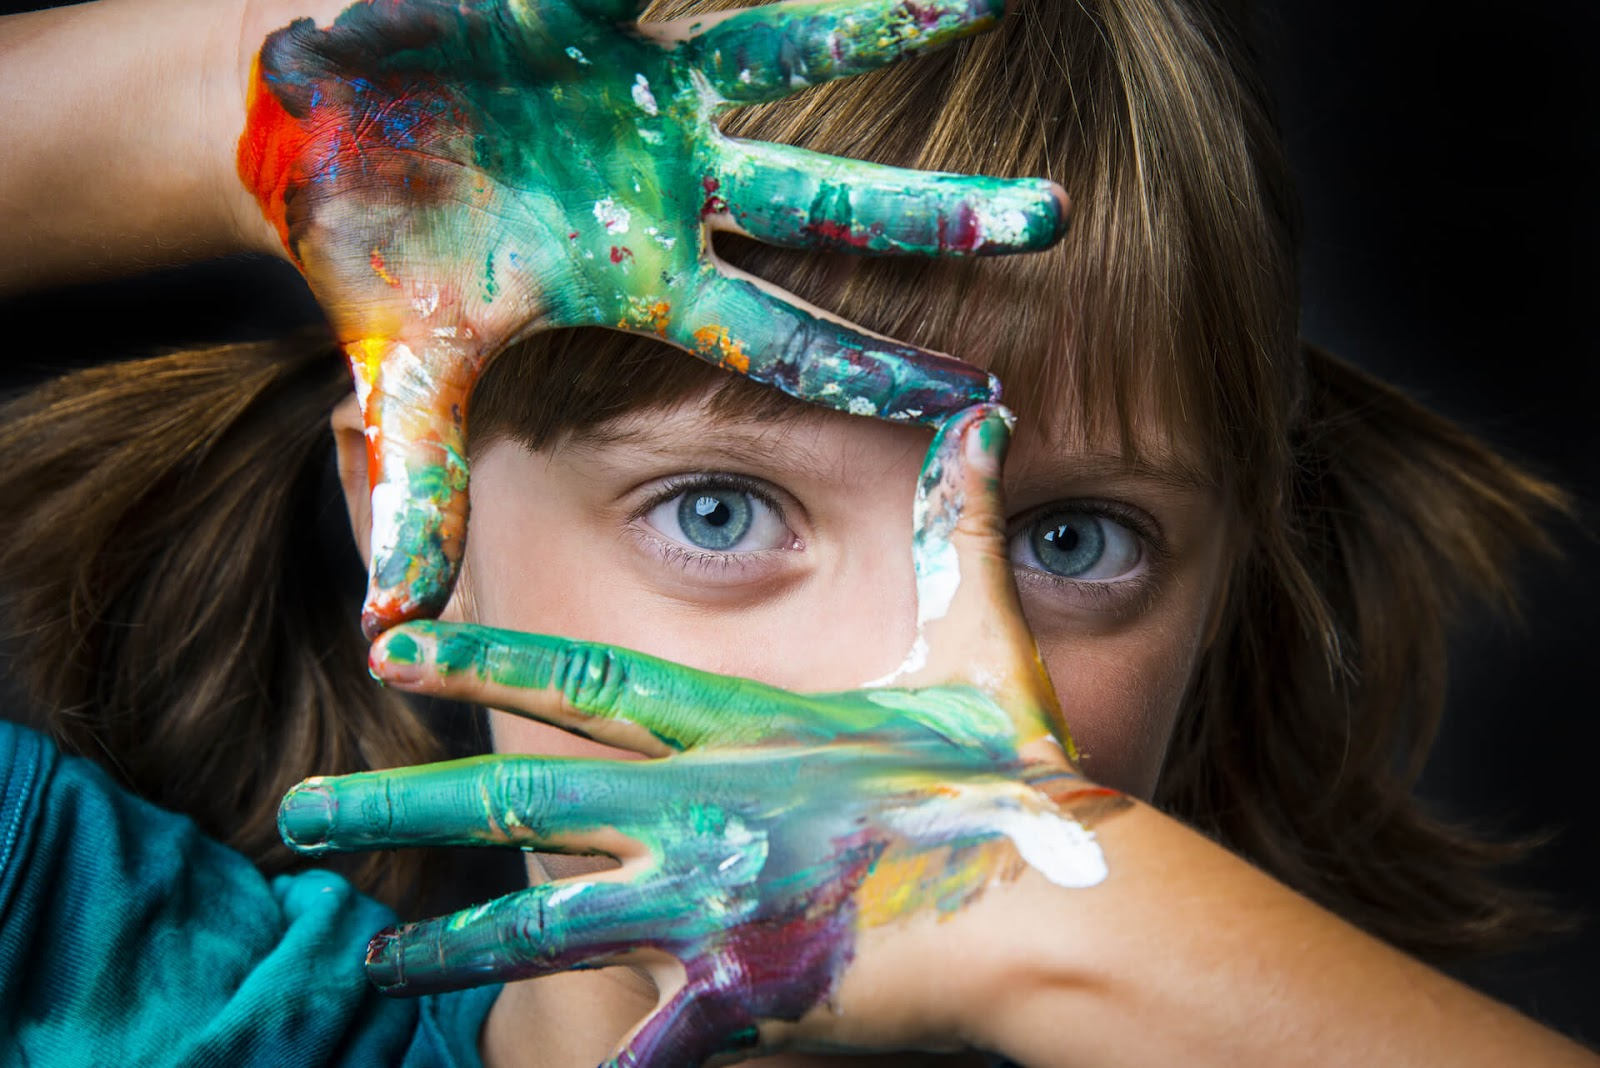 Young girl with paint all over her hands making a frame over her eyes